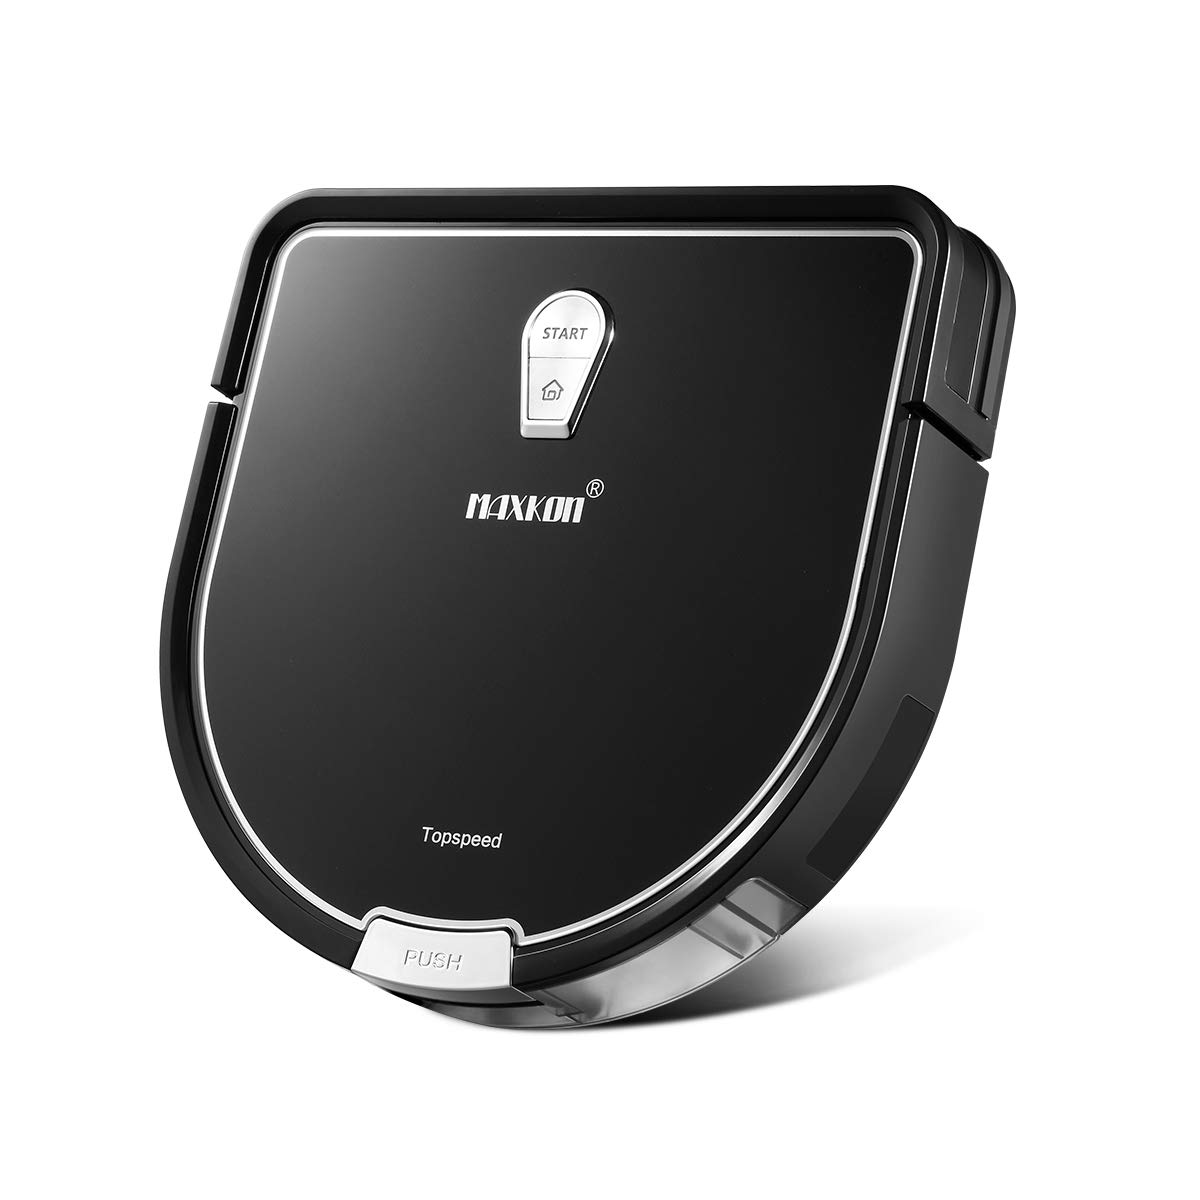 Maxkon Robot Vacuum Cleaner Pro, 2-in-1 Dry & Wet Mopping Automatic Smart Robotic Sweeper, Self-Charging, Scheduling Setting, Edge Cleaning & Cliff Sensor Tec w/Remote by MAXKON